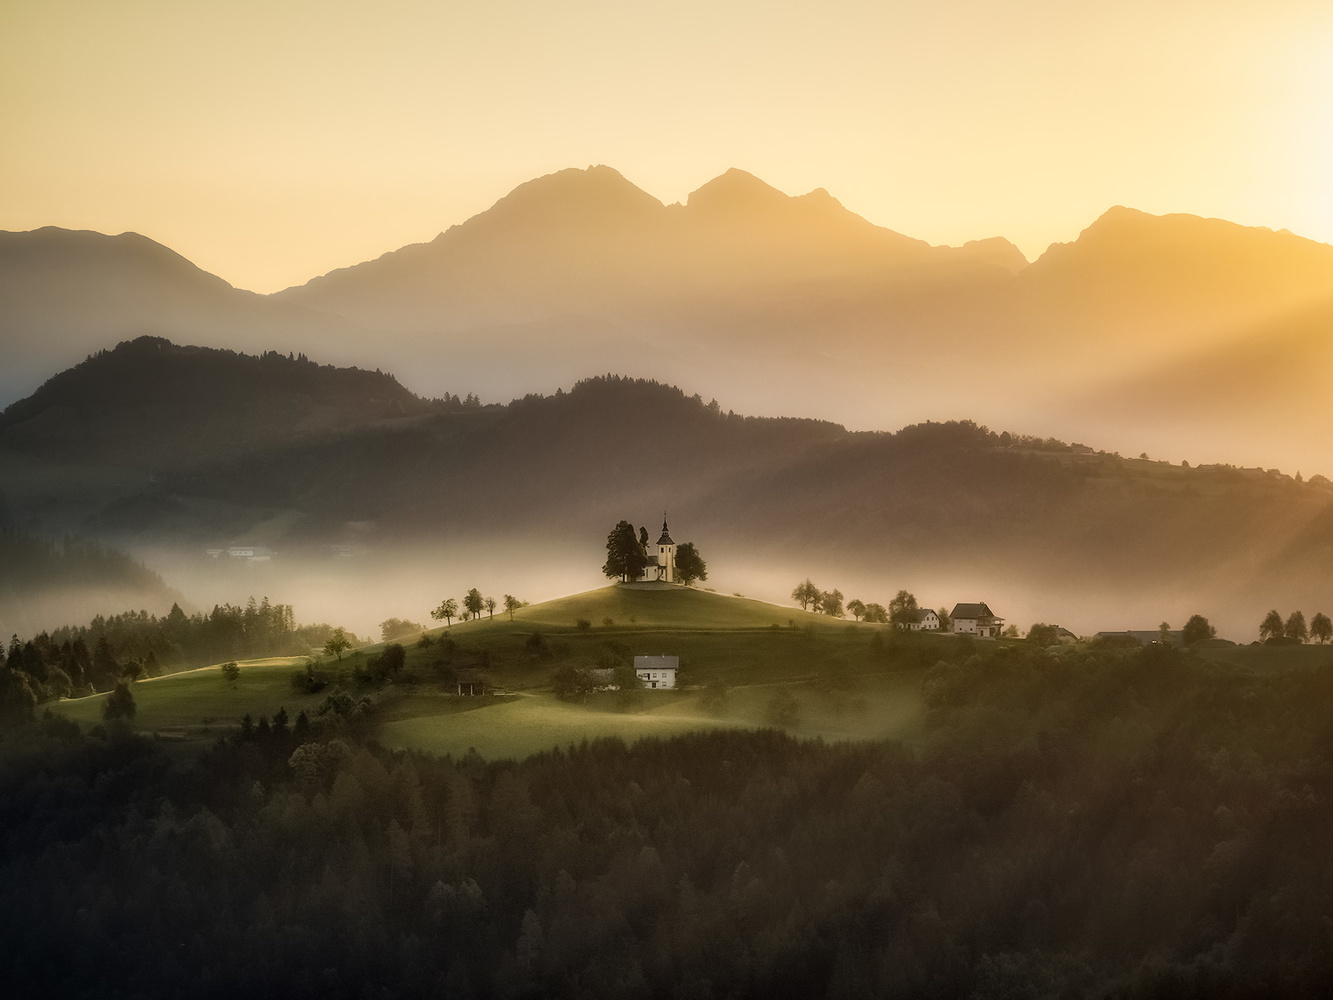 The golden hour by Michele Buttazzoni